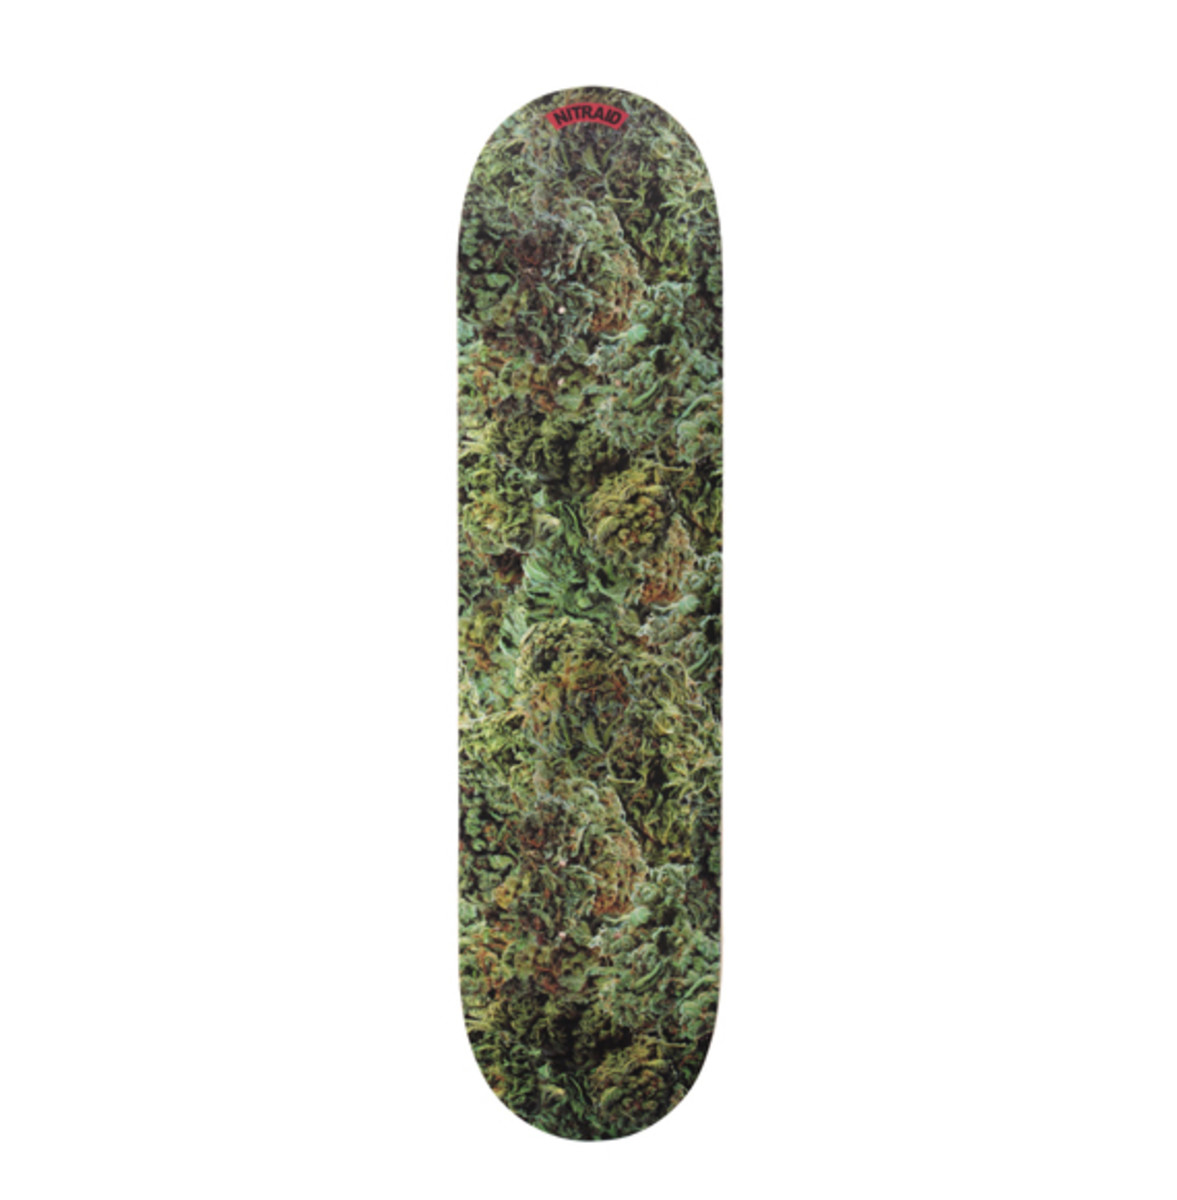 nitraid-dope-forest-skateboard-deck-01